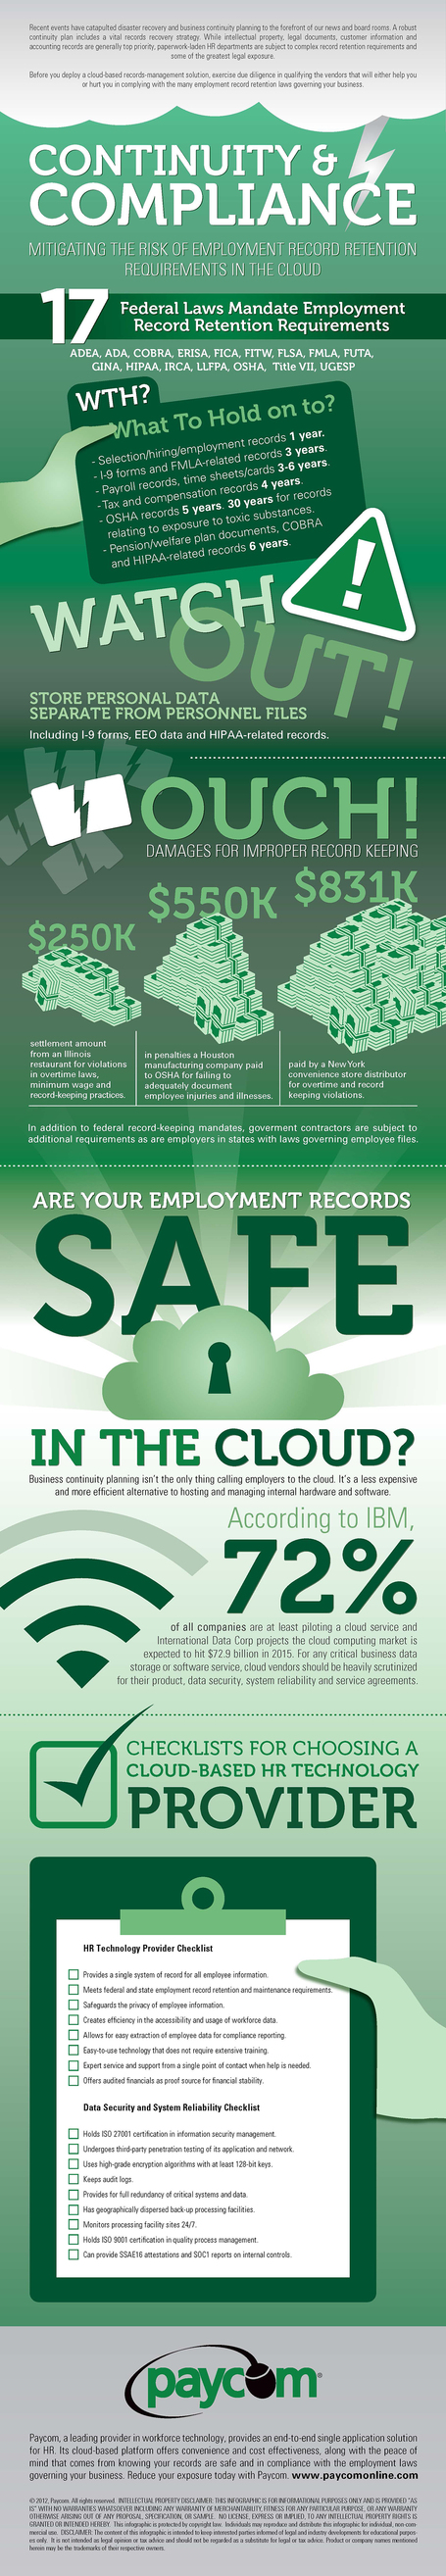 INFOGRAPHIC: Cloud Computing Compliance | Cloud Central | Scoop.it